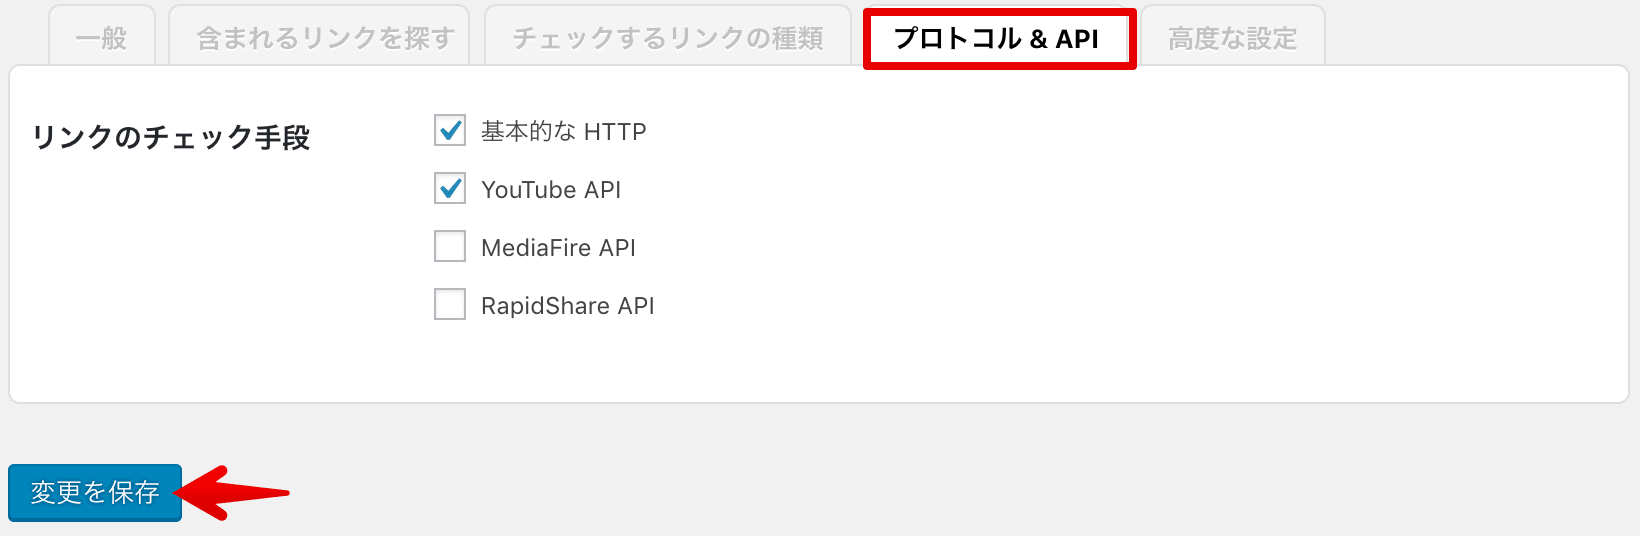 Broken Link Checkerプロトコル&API